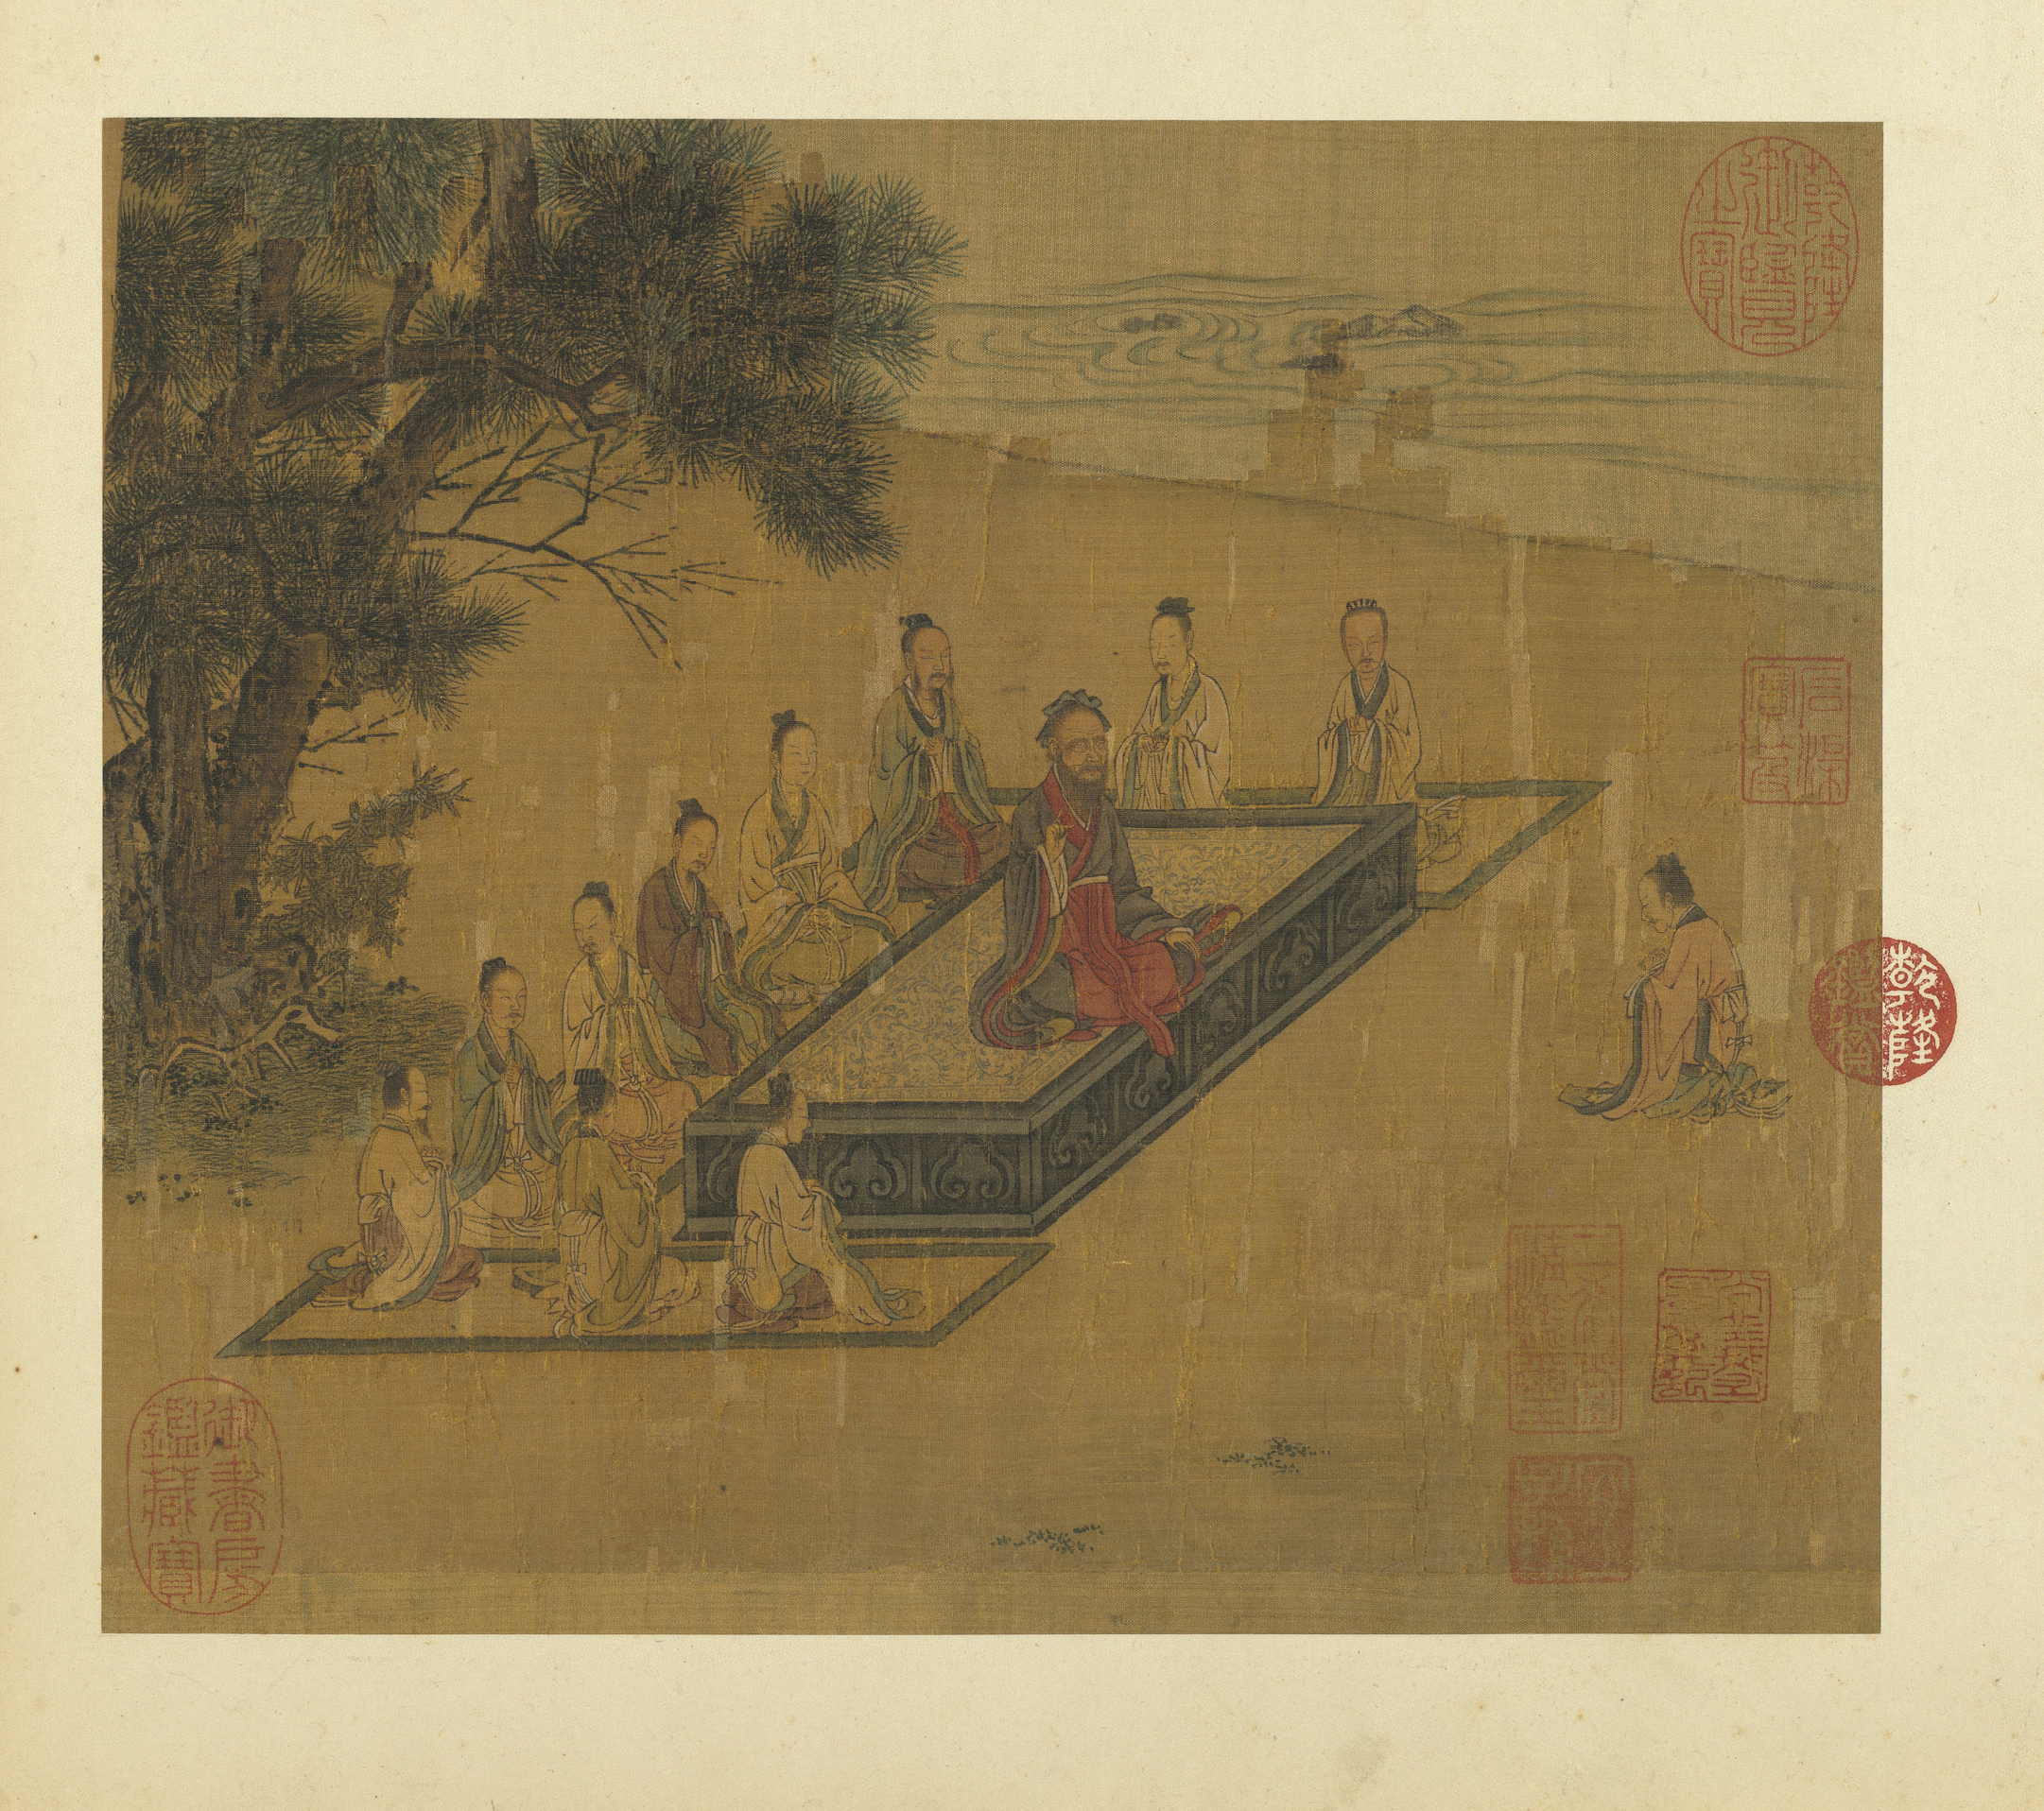 Confucius  Wikipedia Zengzi Right Kneeling Before Confucius Center As Depicted In A  Painting From The Illustrations Of The Classic Of Filial Piety Song Dynasty